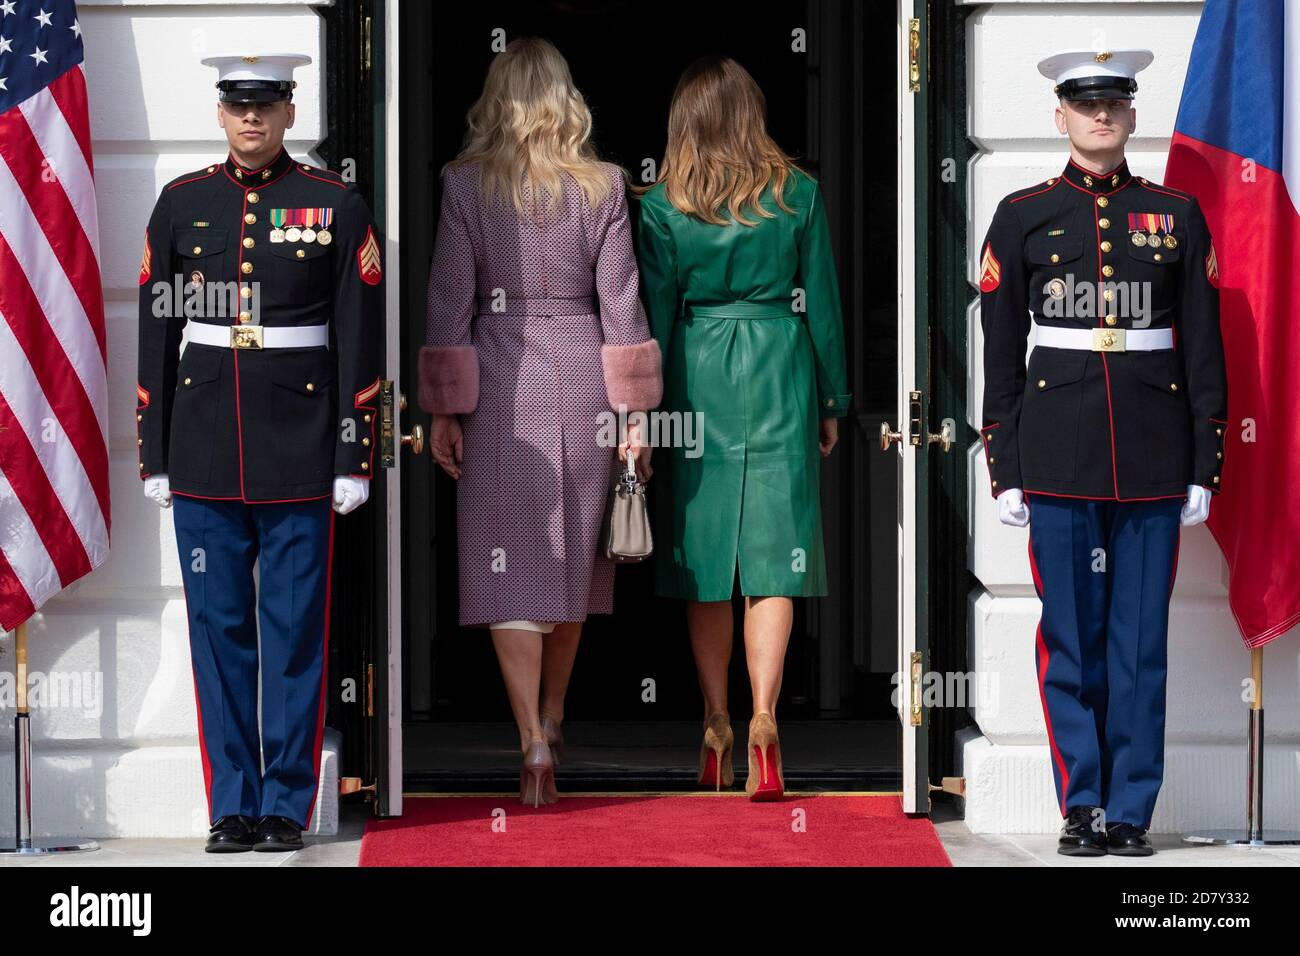 First Lady Melania Trump and the wife of the Prime Minister of the Czech Republic Monika Babišová enter the White House in Washington, D.C. on March 7, 2019. Credit: Alex Edelman/The Photo Access Stock Photo